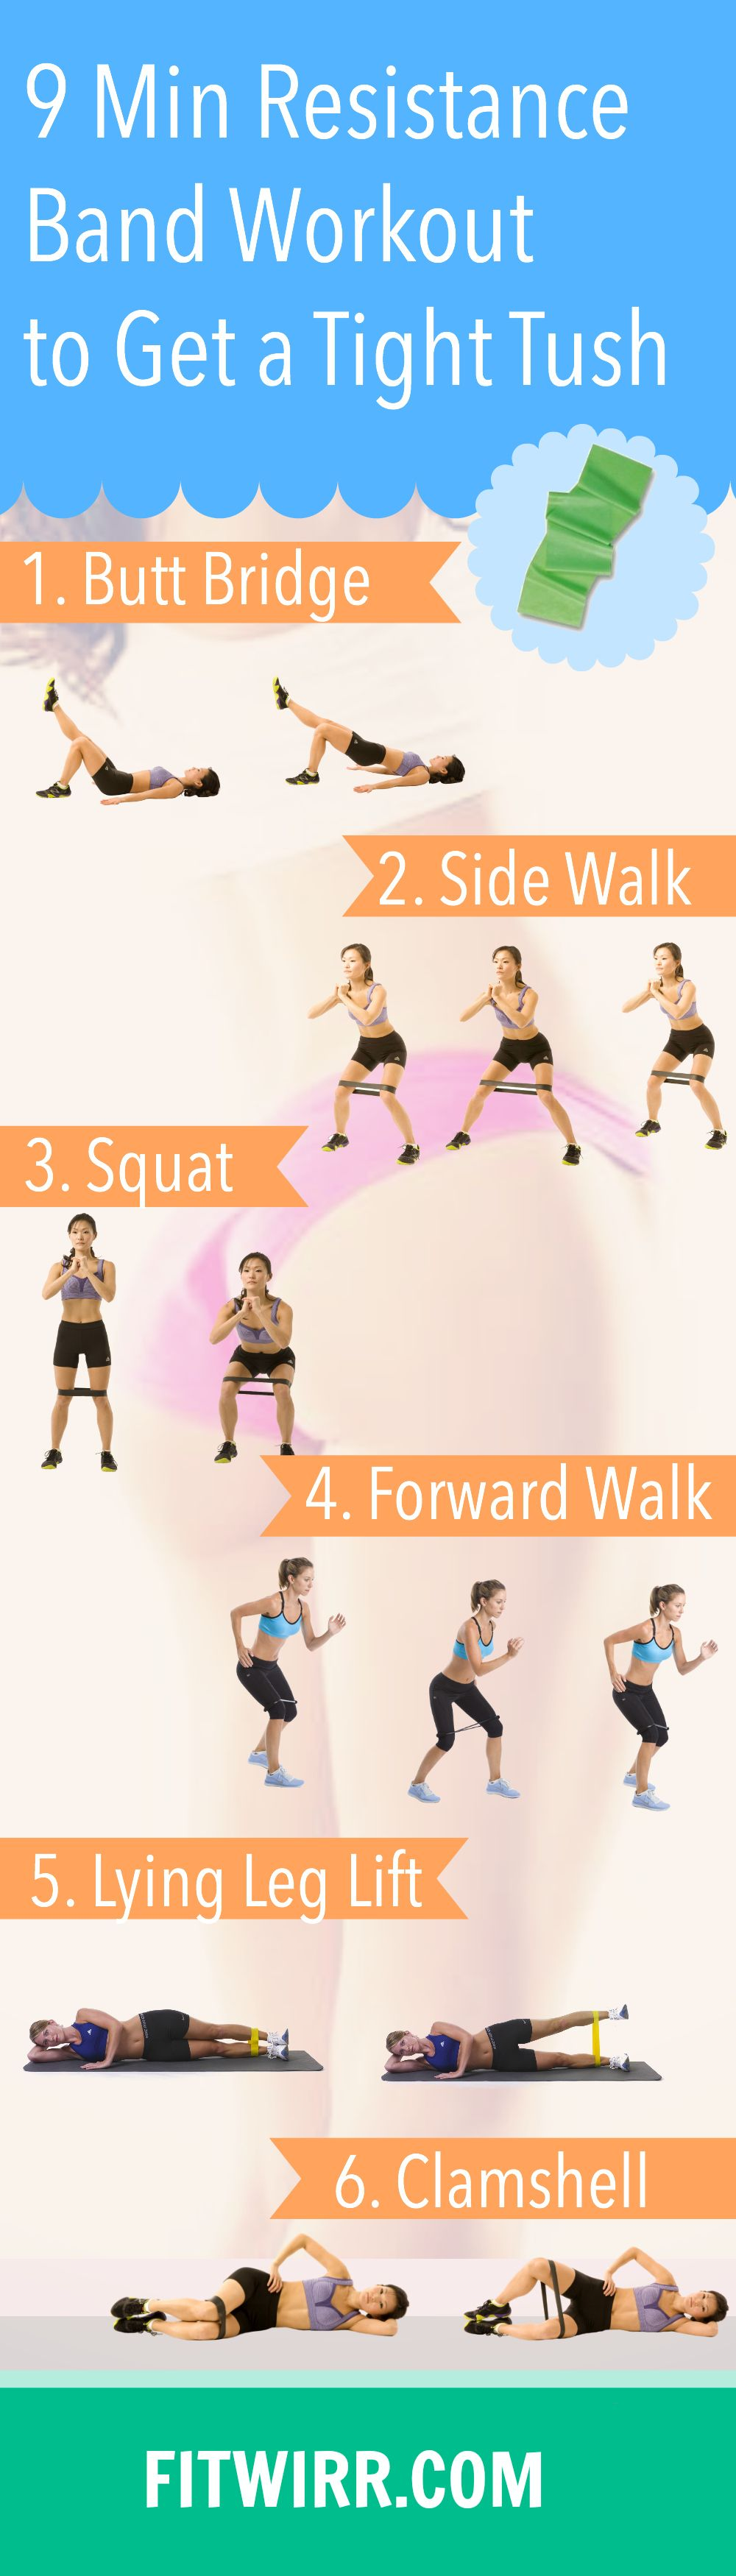 The Happy Healthy Lifestyle WoRkOuTs Pinterest Workout